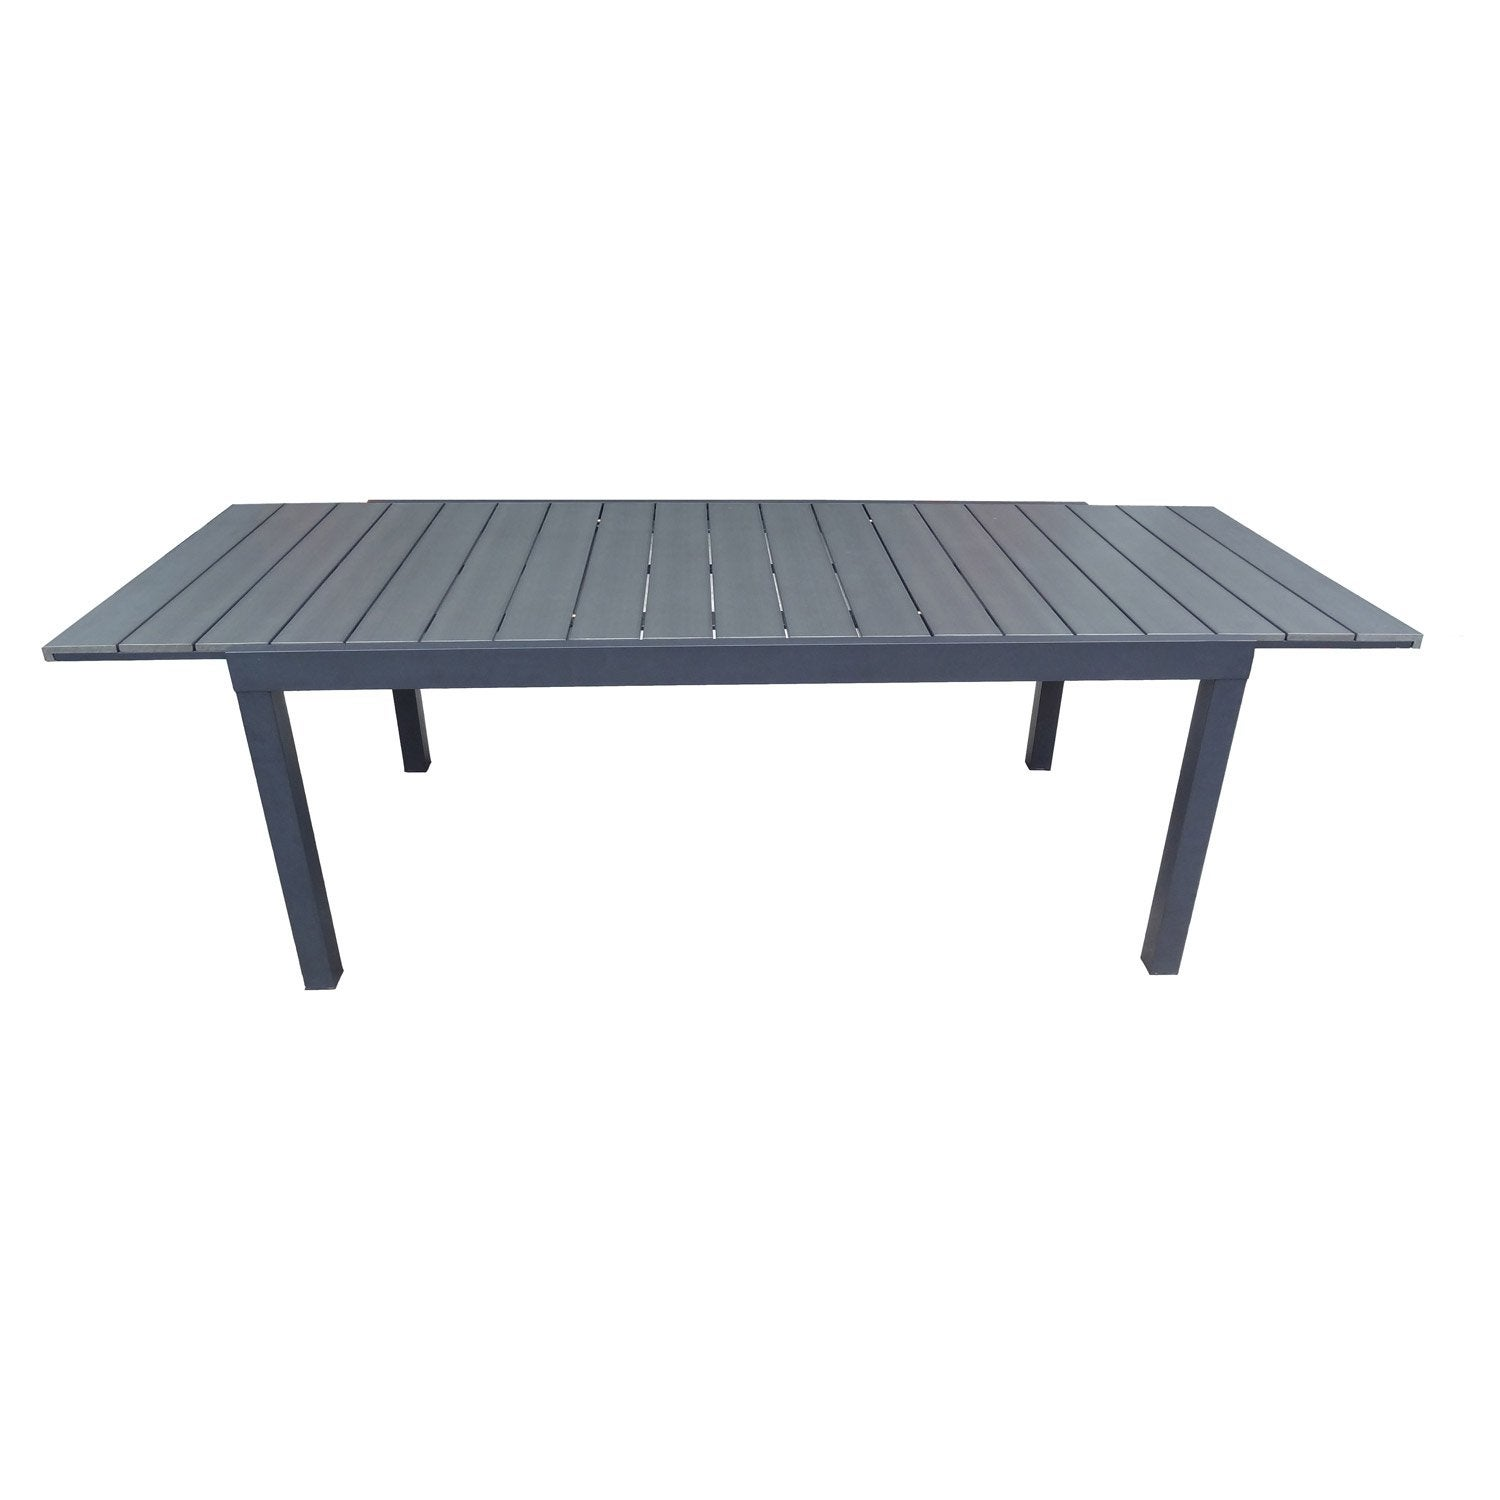 table de jardin naterial pratt rectangulaire gris leroy merlin. Black Bedroom Furniture Sets. Home Design Ideas